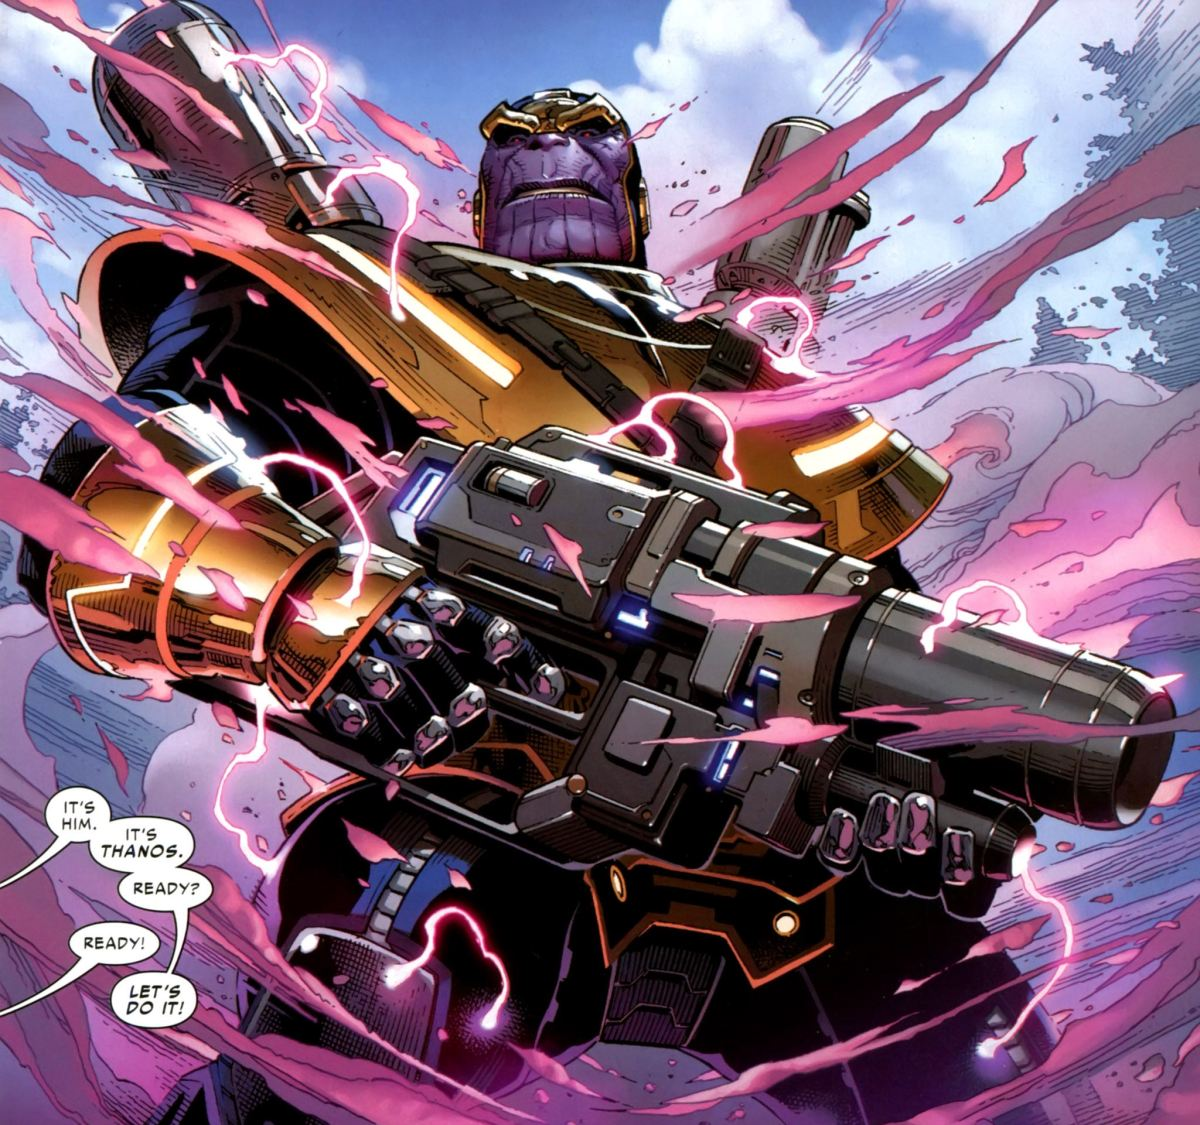 War Machine, Captain Marvel, She-Hulk and Black Panther vs. Thanos (Civil War II)